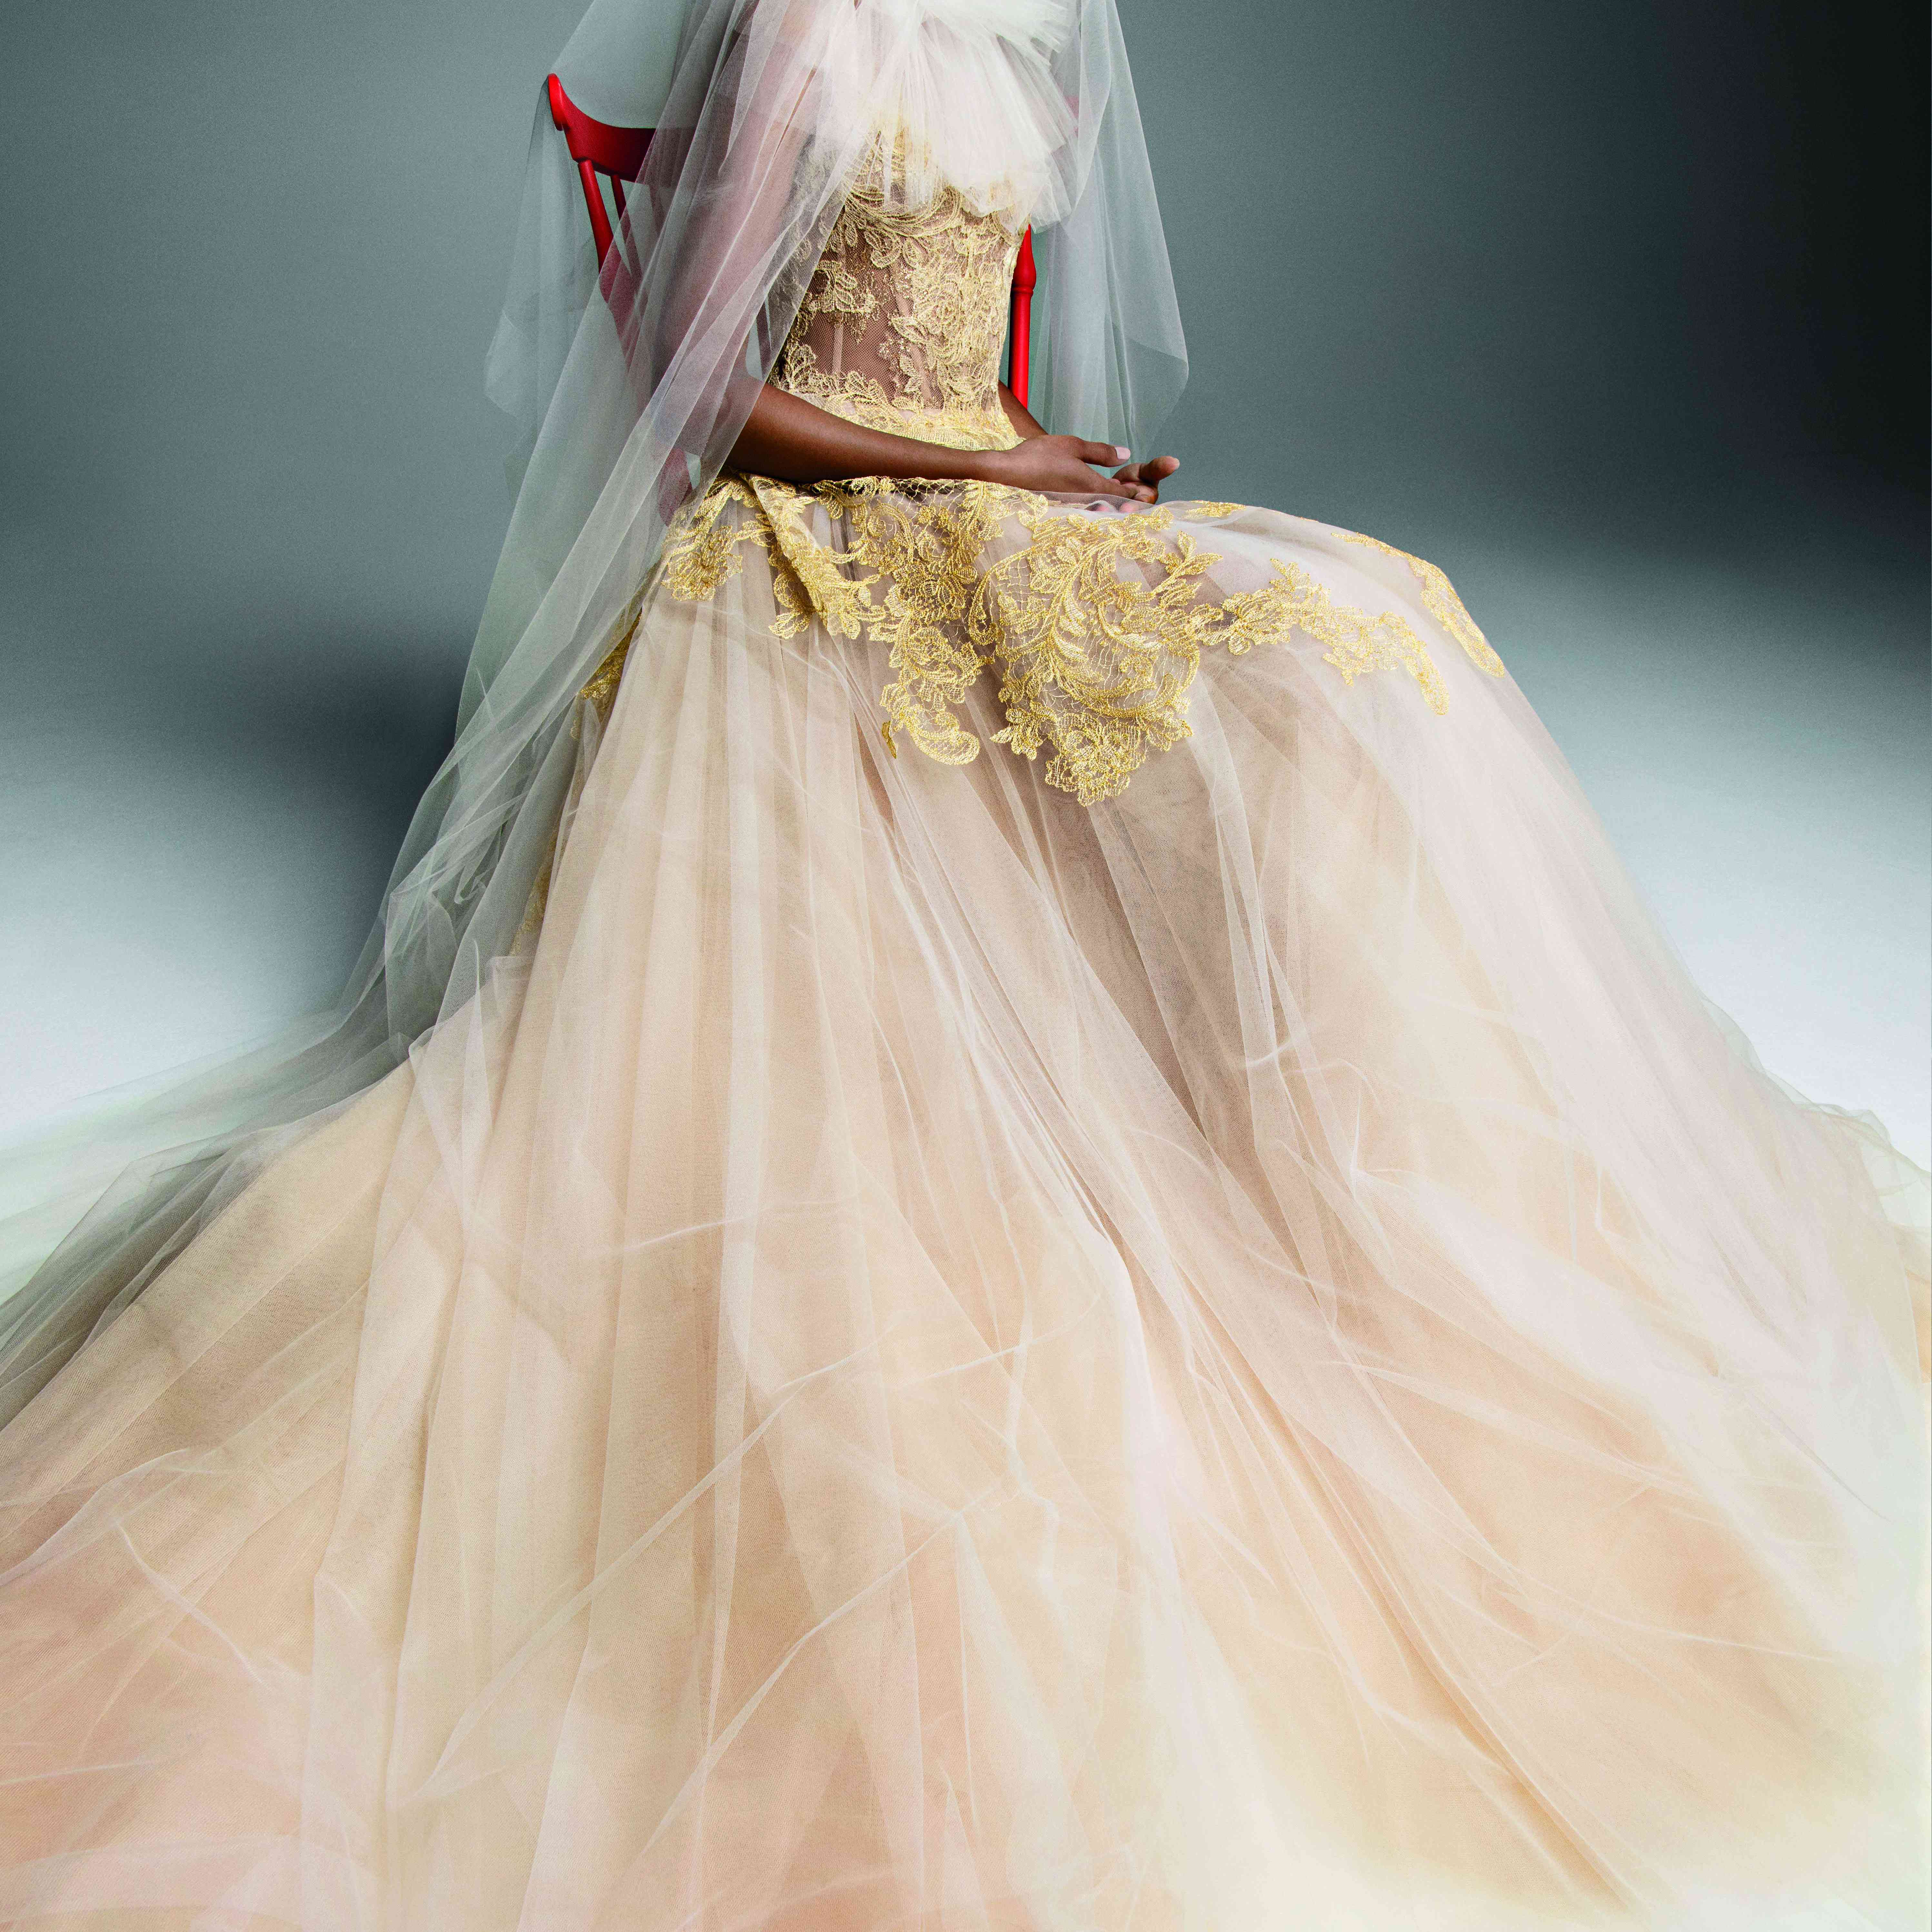 Model in nude and ivory tulle A-line gown with gold lace accents on the bodice and skirt